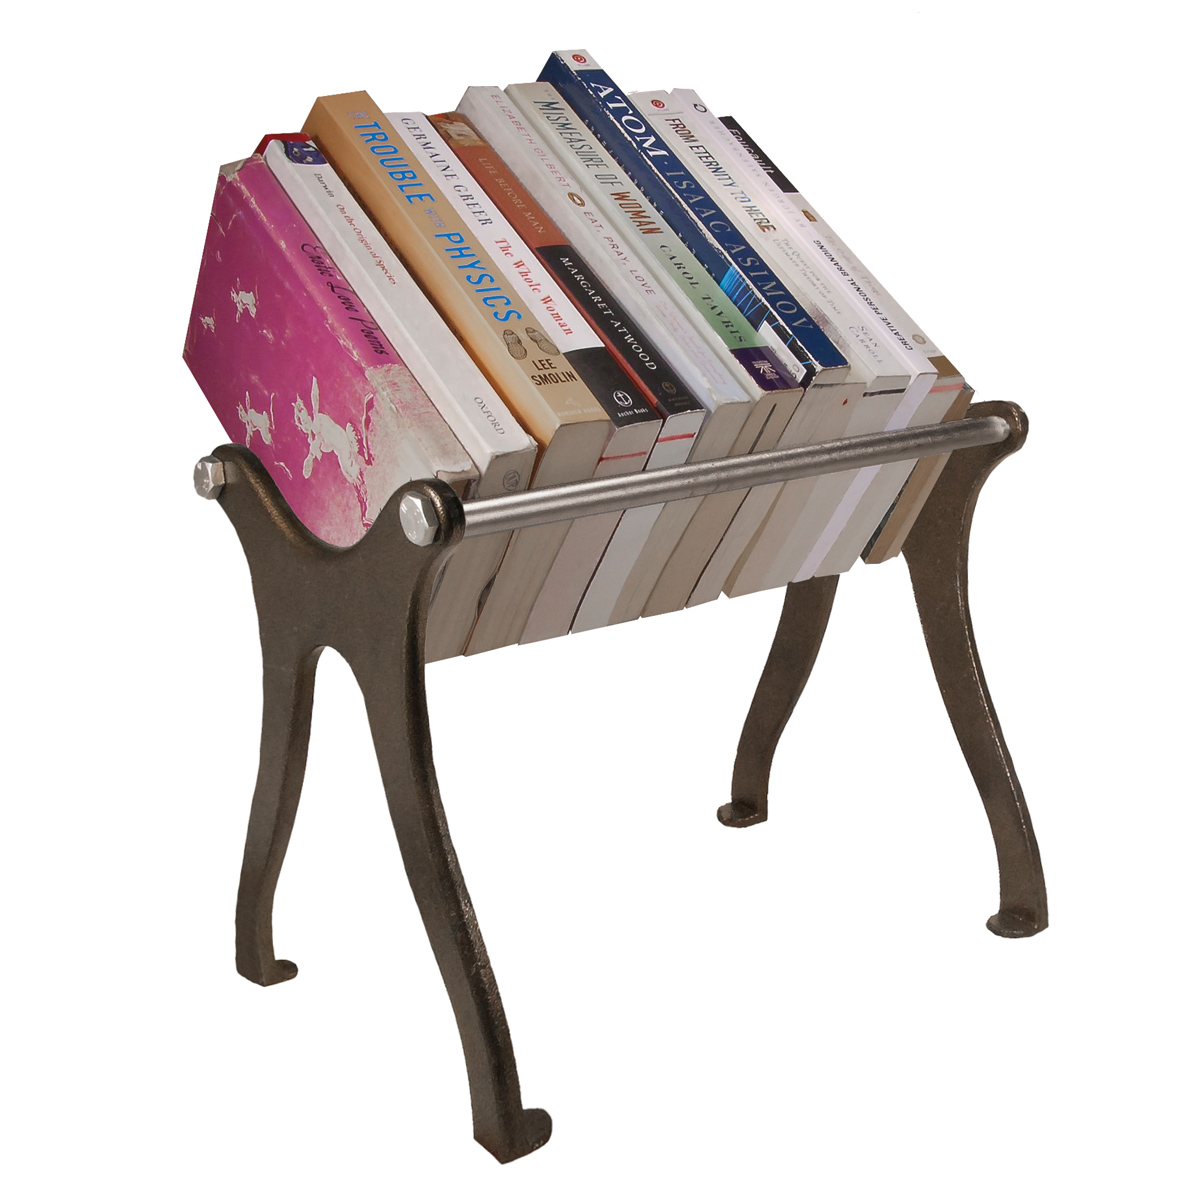 Cast Iron Book Shelf   Talk Design    Cast iron ends and metal rods create an elevated bookshelf display to sit above the surface of your desk or table   Retail Value: $159